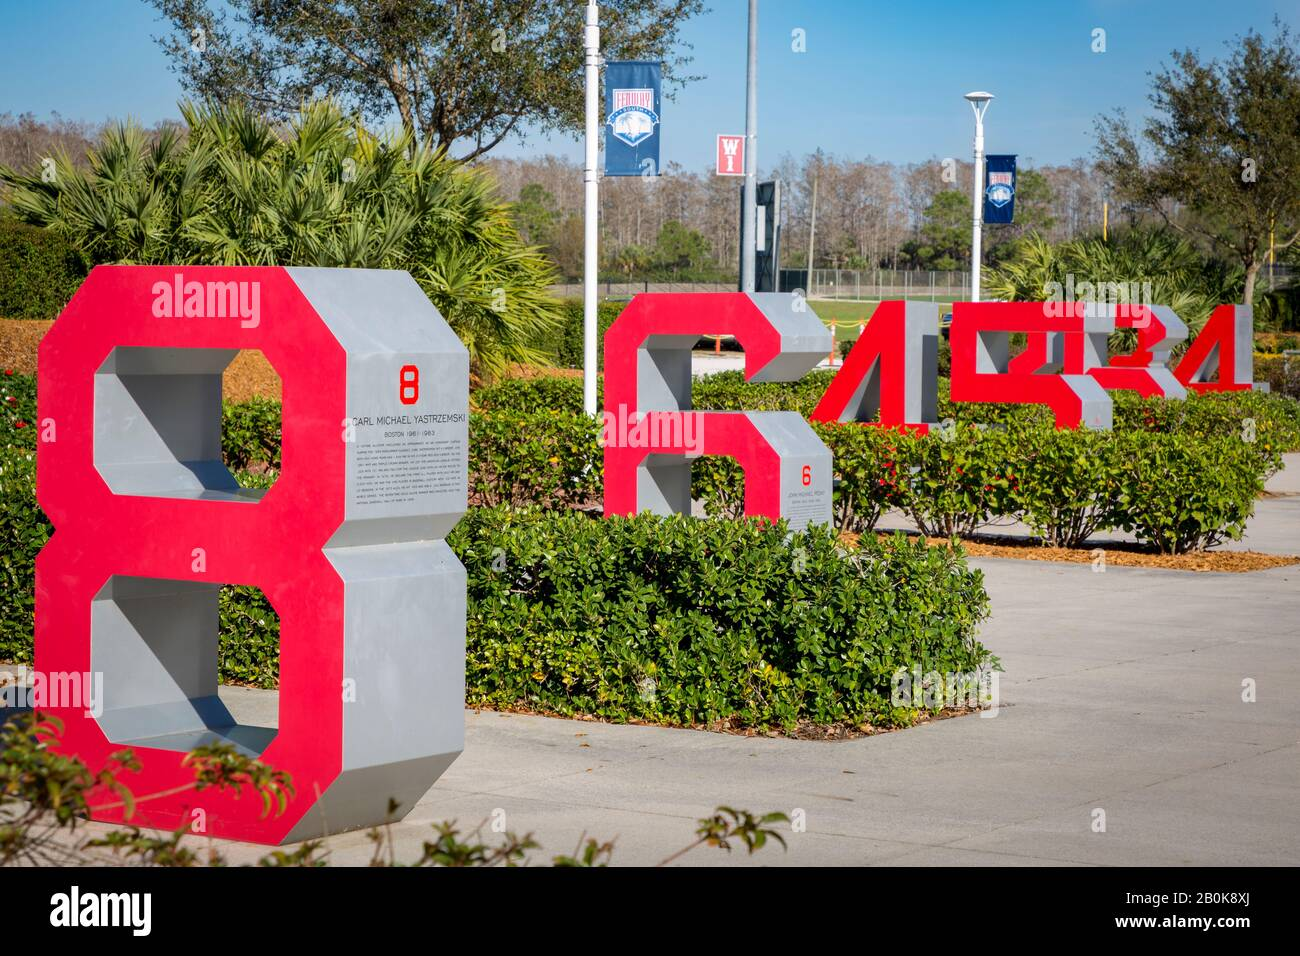 Retired numbers of past players for the Boston Red Sox at JetBlue Park - Red Sox spring training facility, Ft Myers, Florida, USA Stock Photo